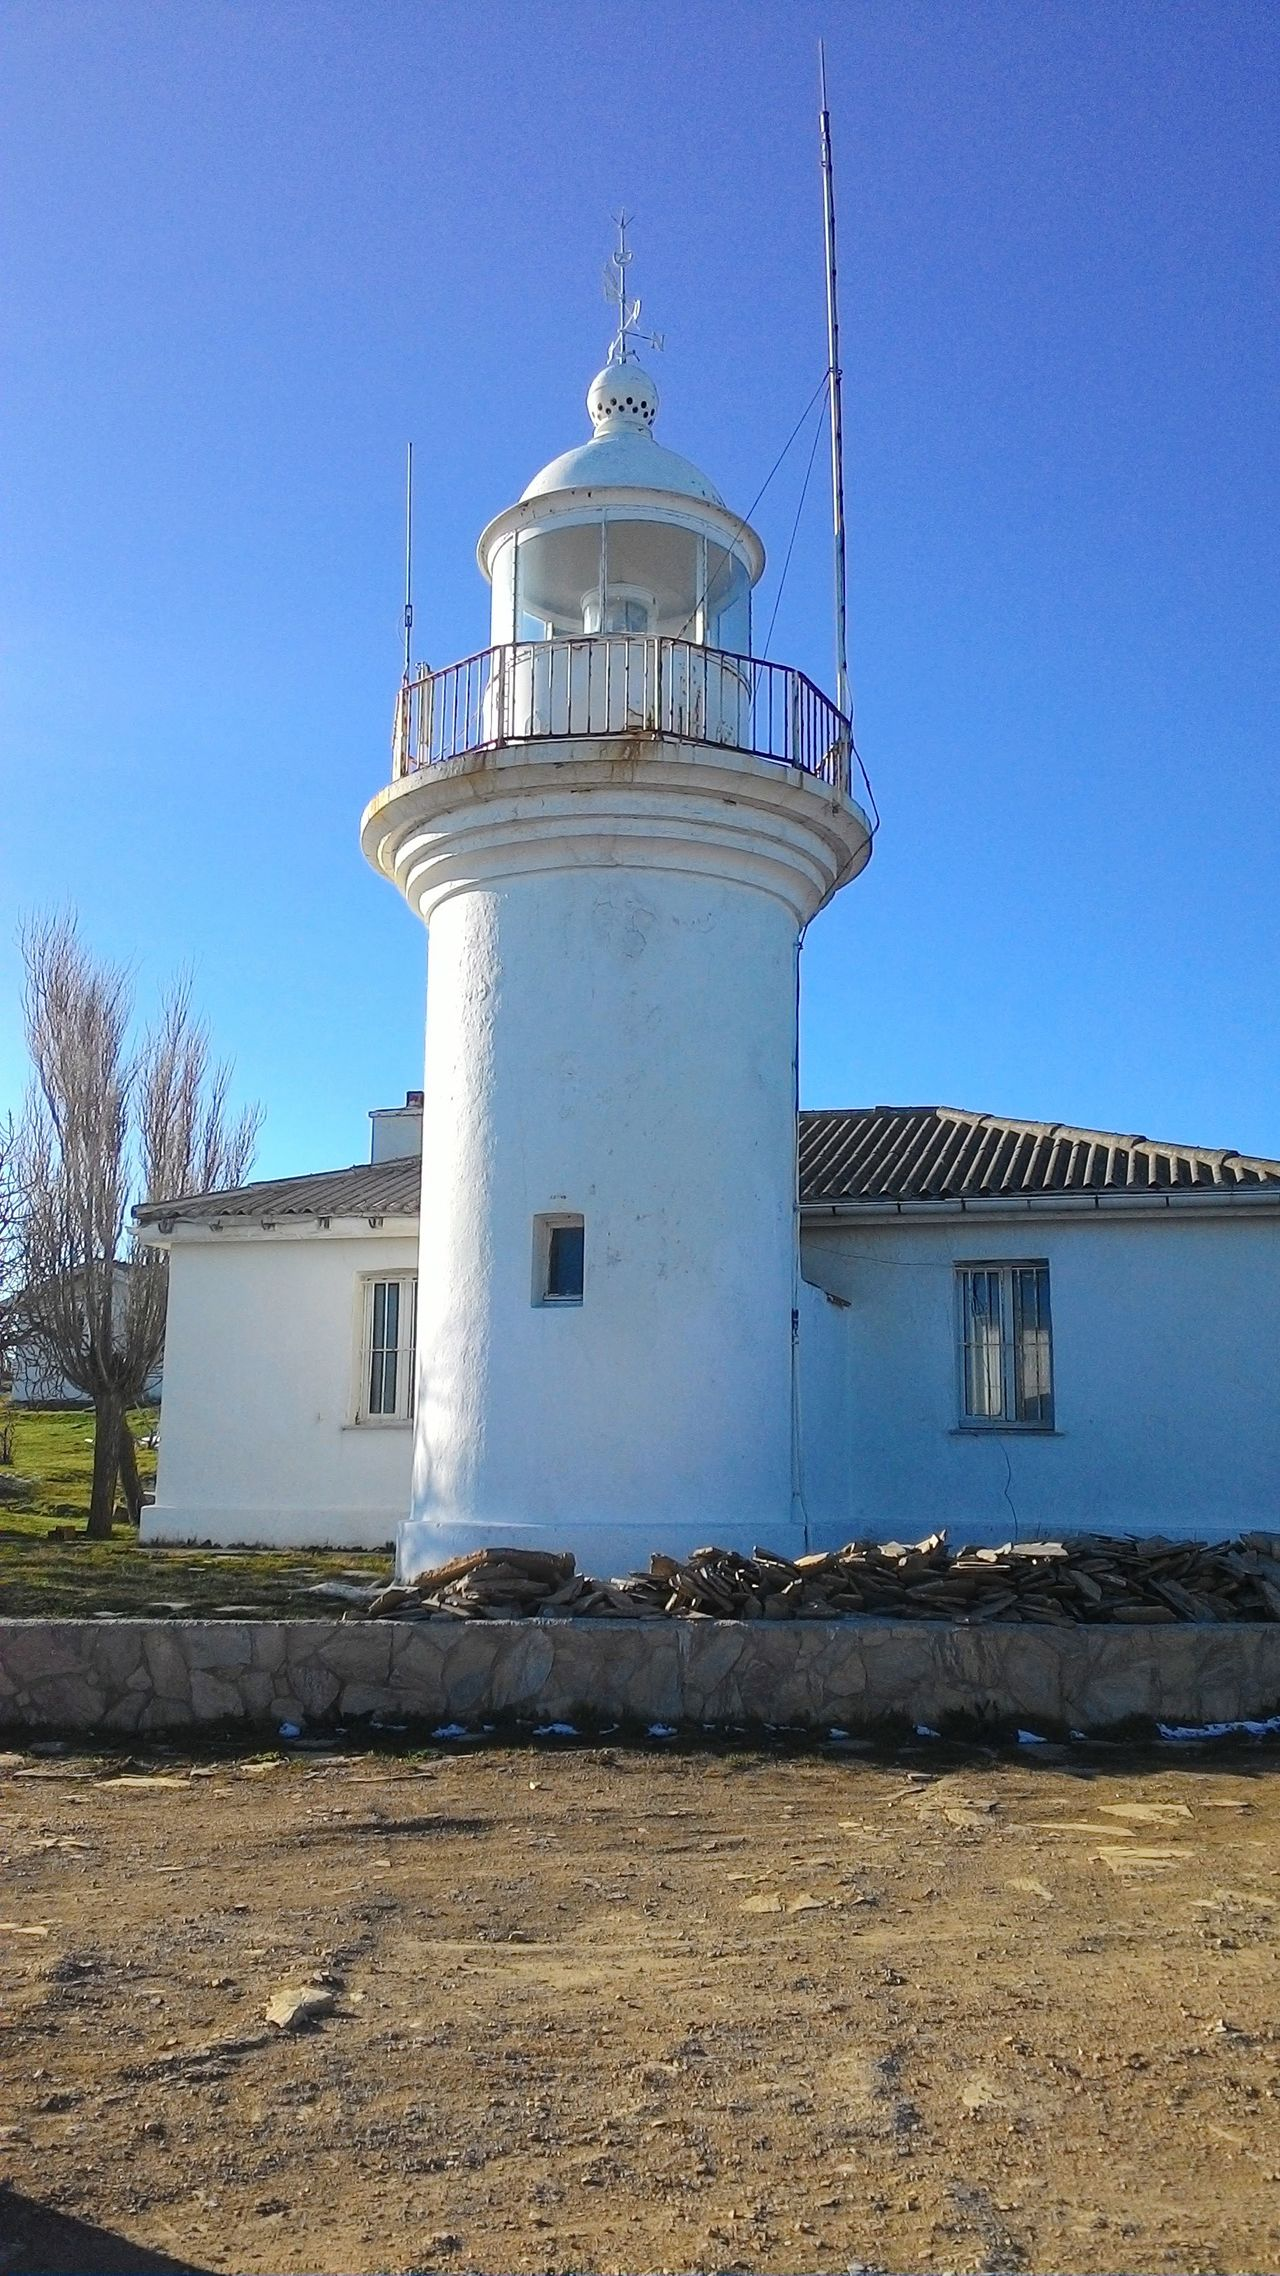 Protection Building Exterior Lighthouse Architecture Safety Tower Security Sky Built Structure Beach Lookout Tower Prison Travel Destinations Day Business Finance And Industry No People Sea Security System Outdoors Clear Sky